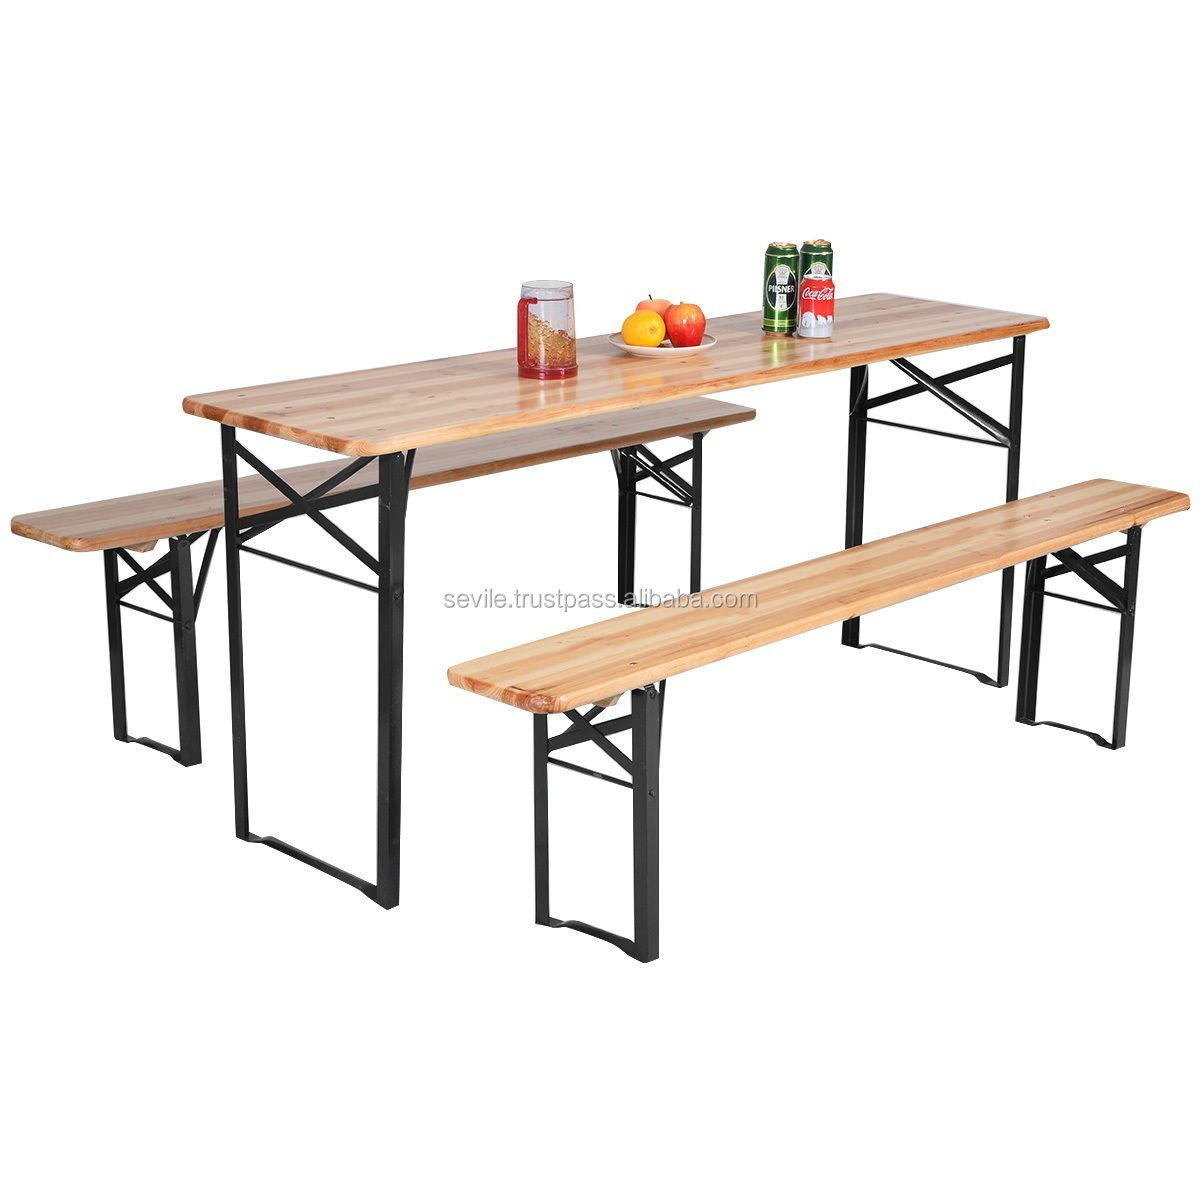 Beer Table Bench Set Folding Wooden Top Picnic Table Patio Garden Furniture